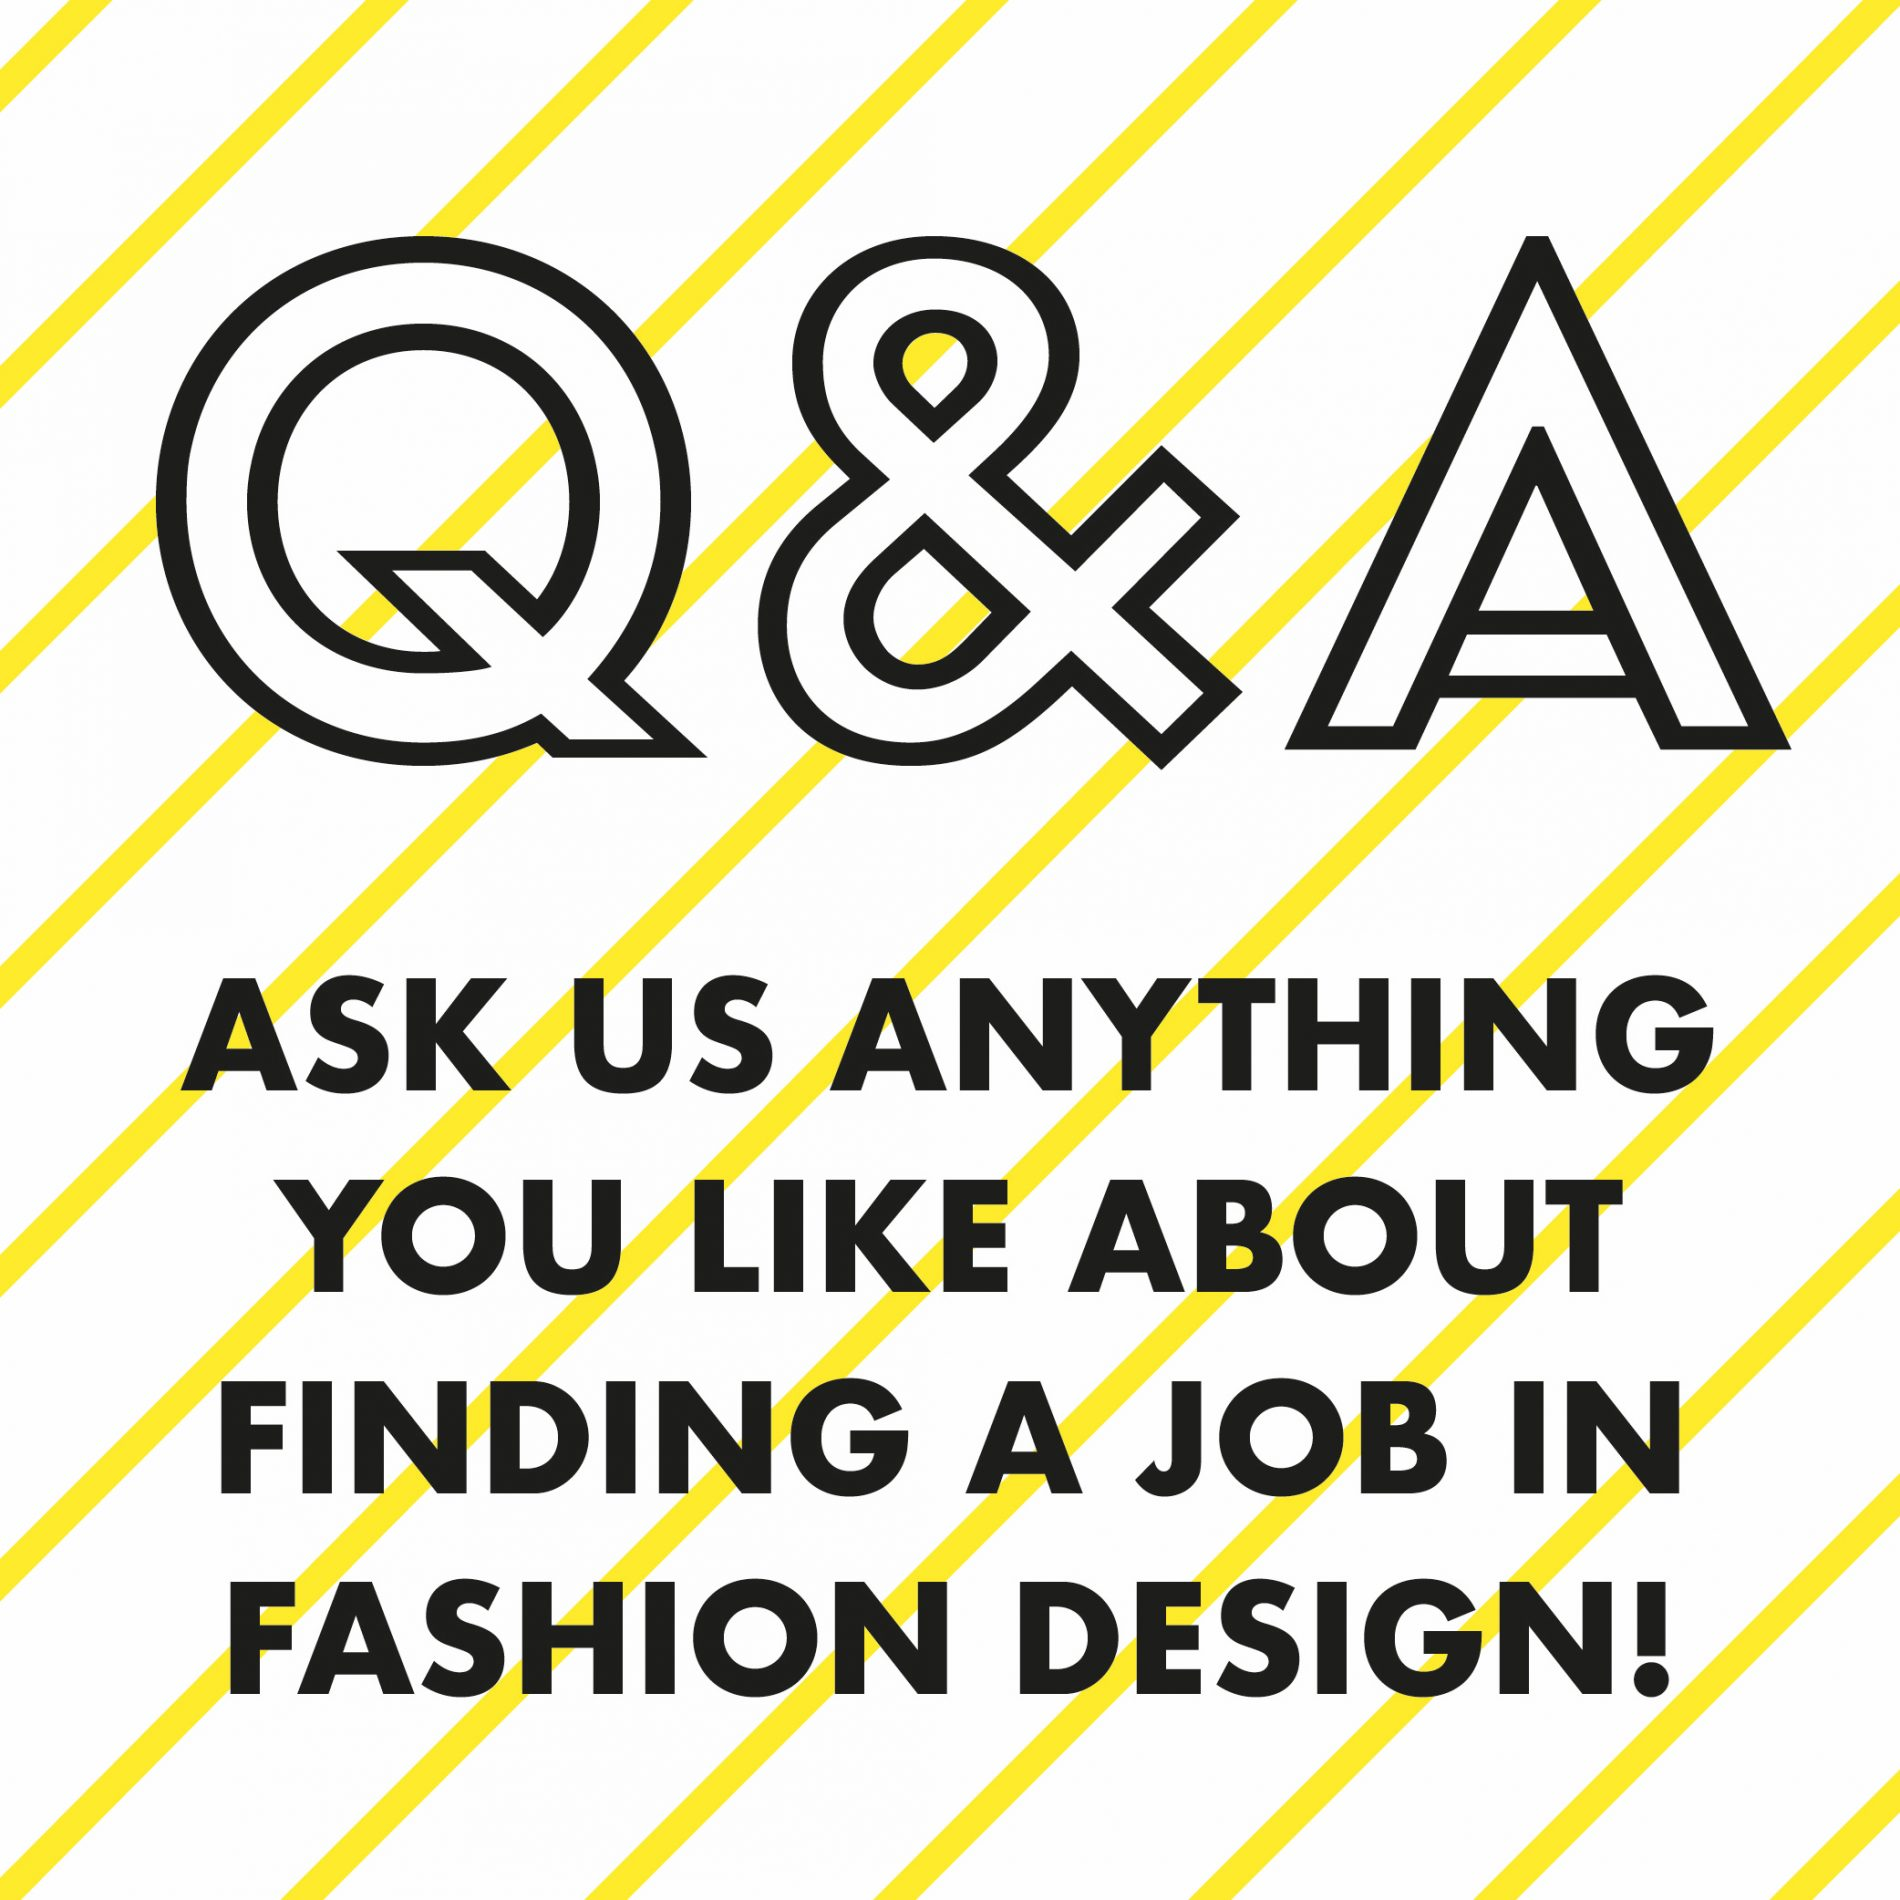 Q&A Questions and Answers job fashion!